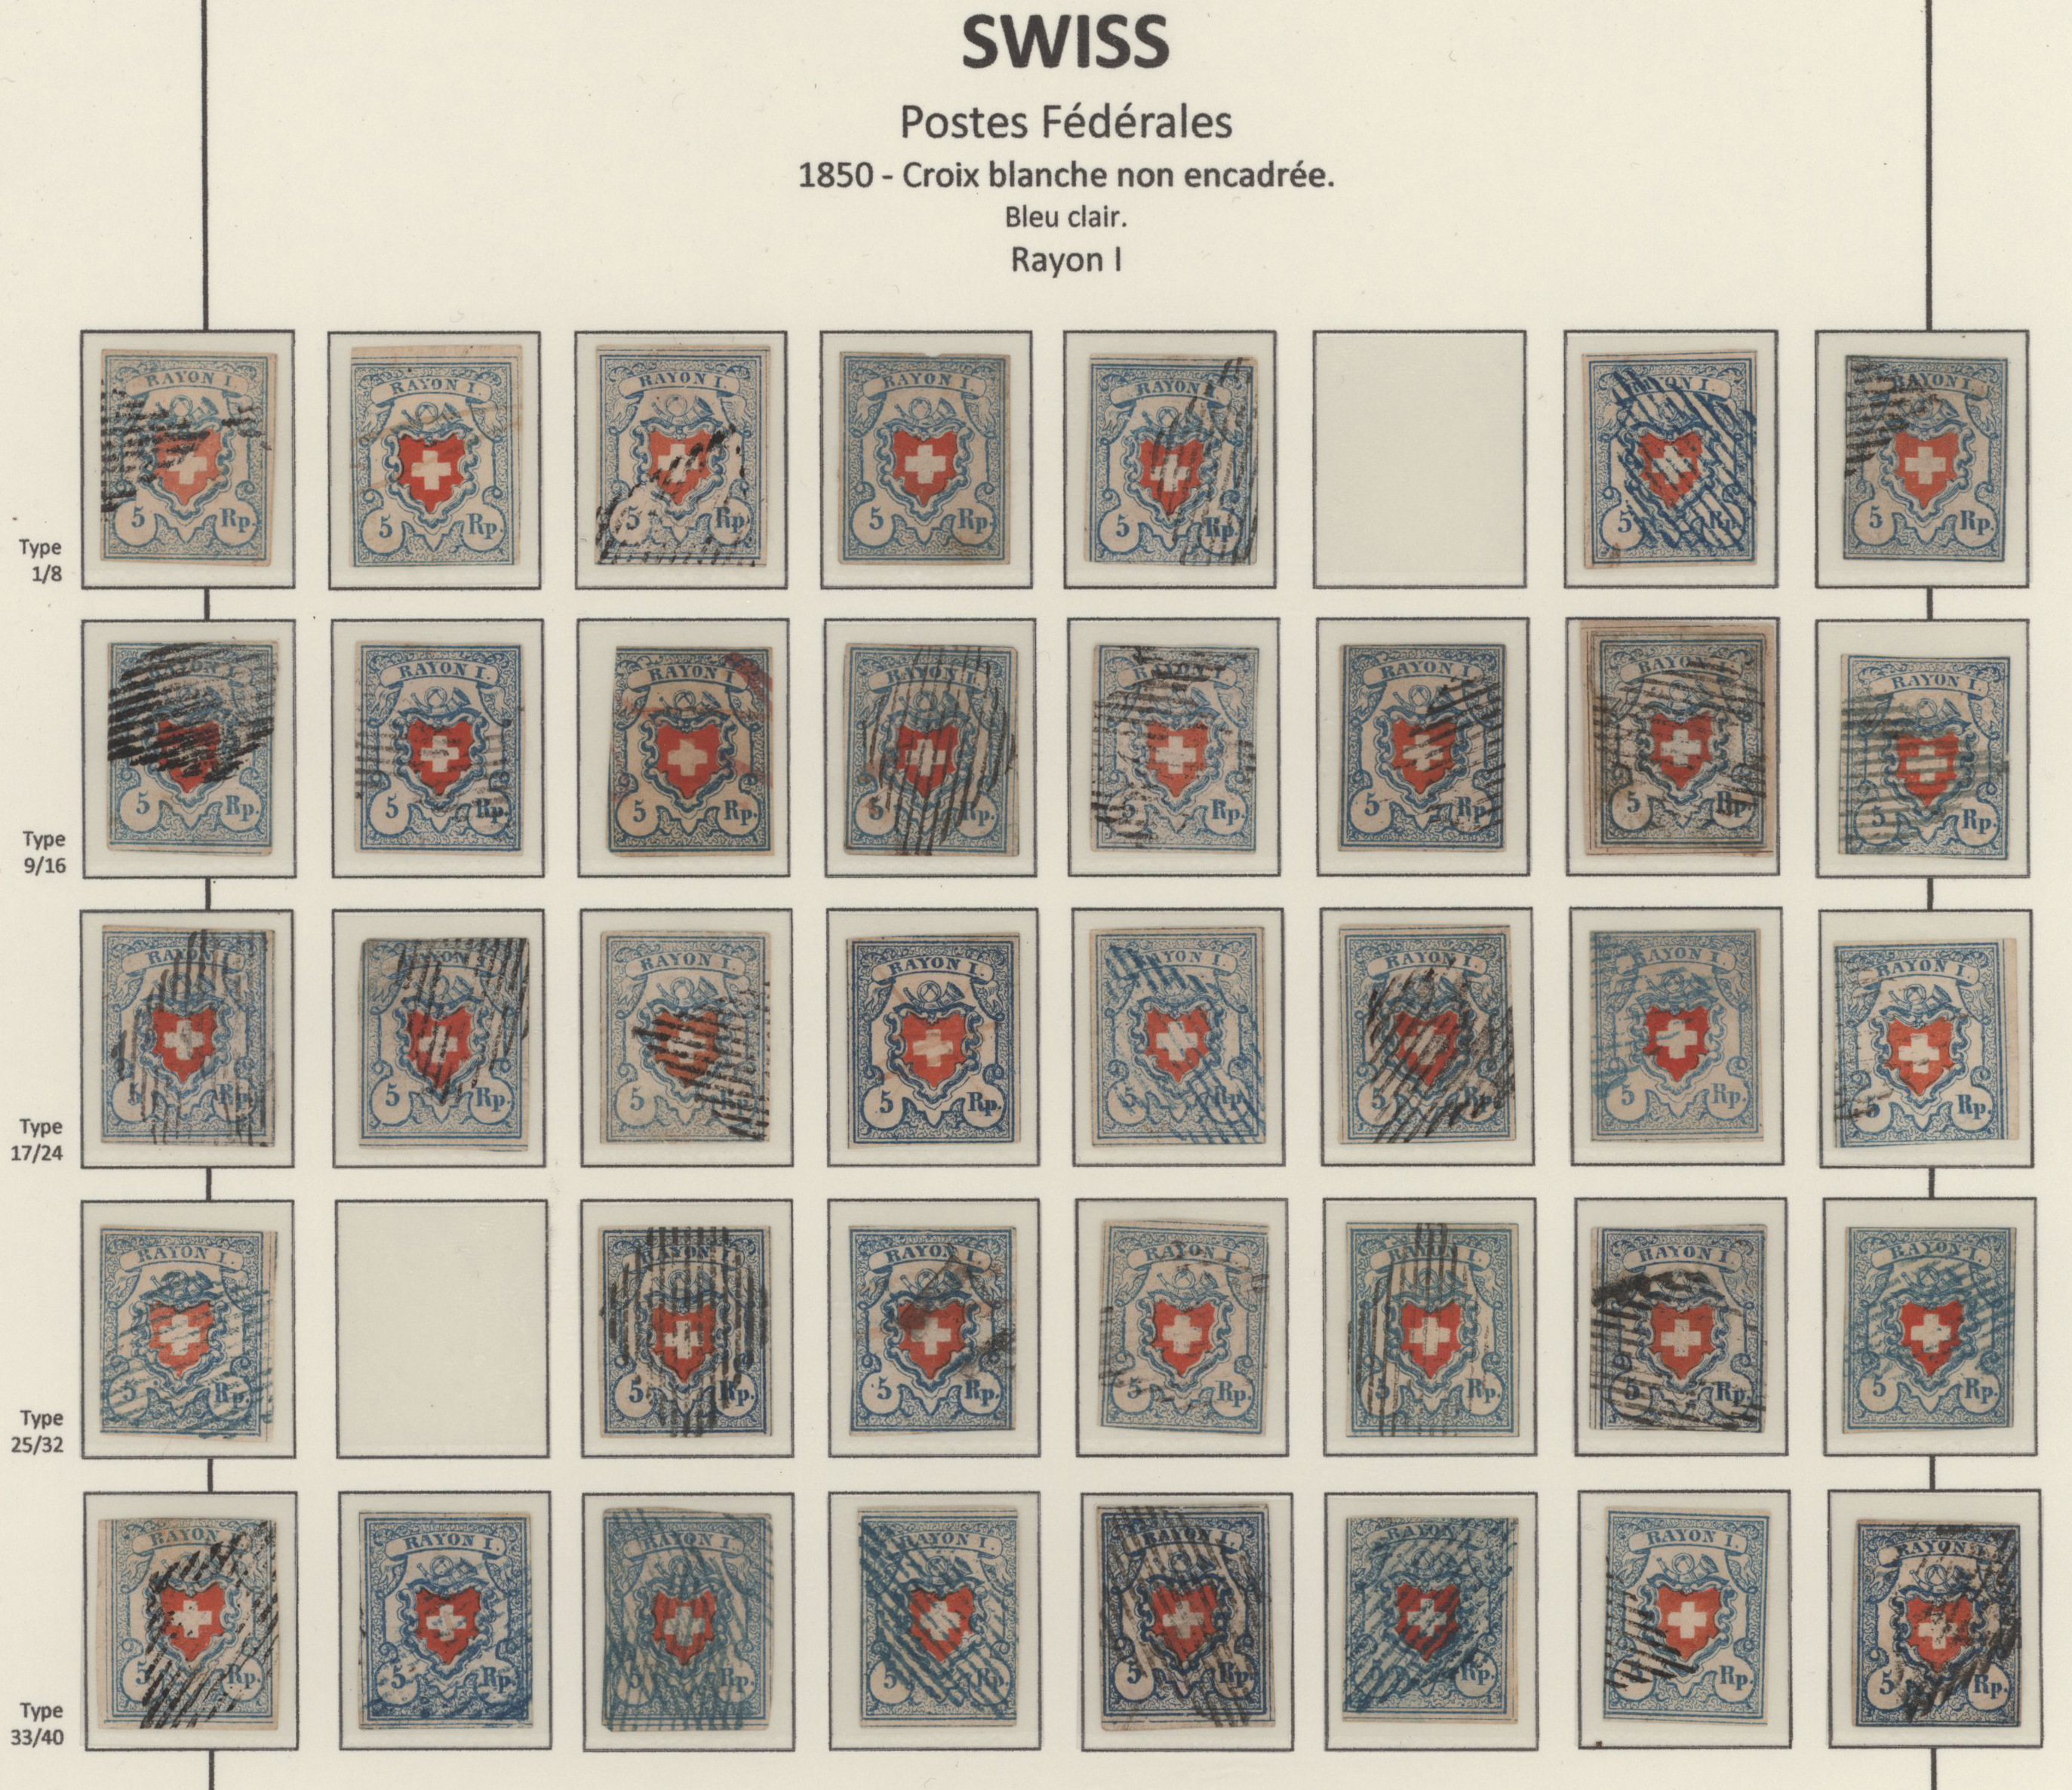 Lot 25501 - schweiz  -  Auktionshaus Christoph Gärtner GmbH & Co. KG Sale #46 Collections Worldwide